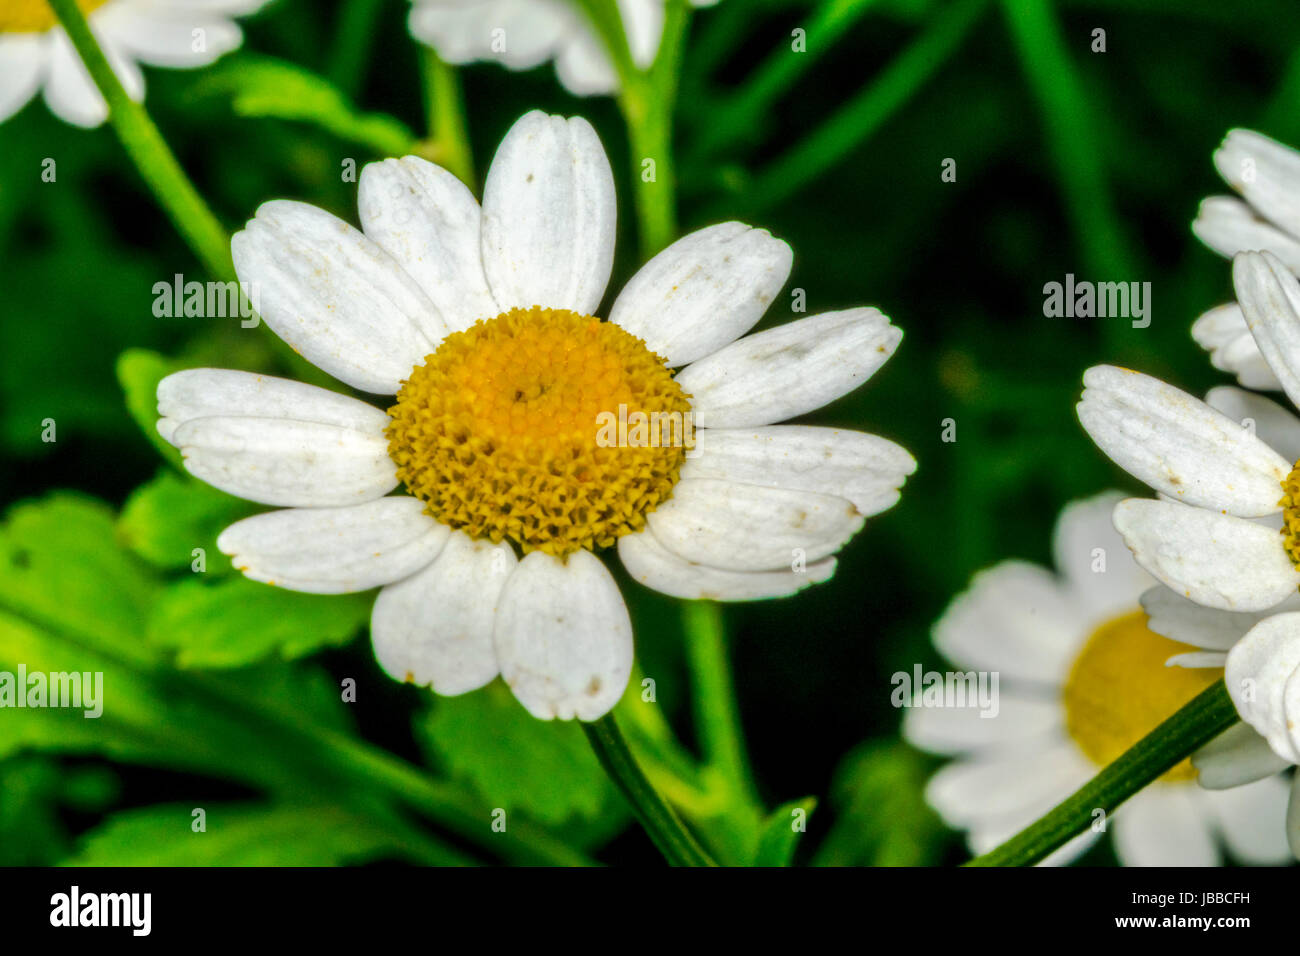 Little daisy stock photos little daisy stock images page 2 alamy little daisy flowers in a garden stock image izmirmasajfo